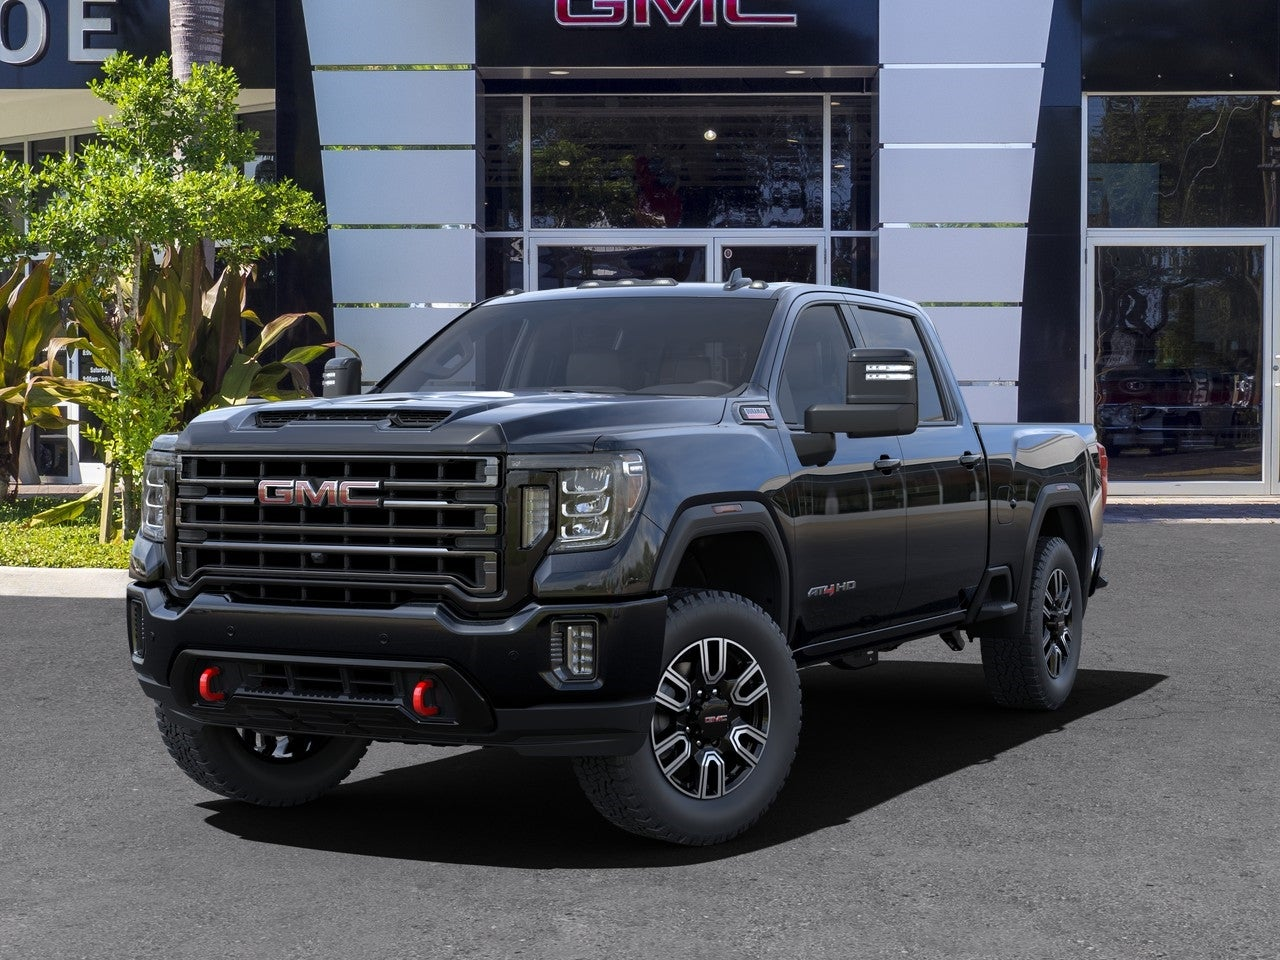 2021 GMC Sierra 2500 Crew Cab 4x4, Pickup #T21131 - photo 23